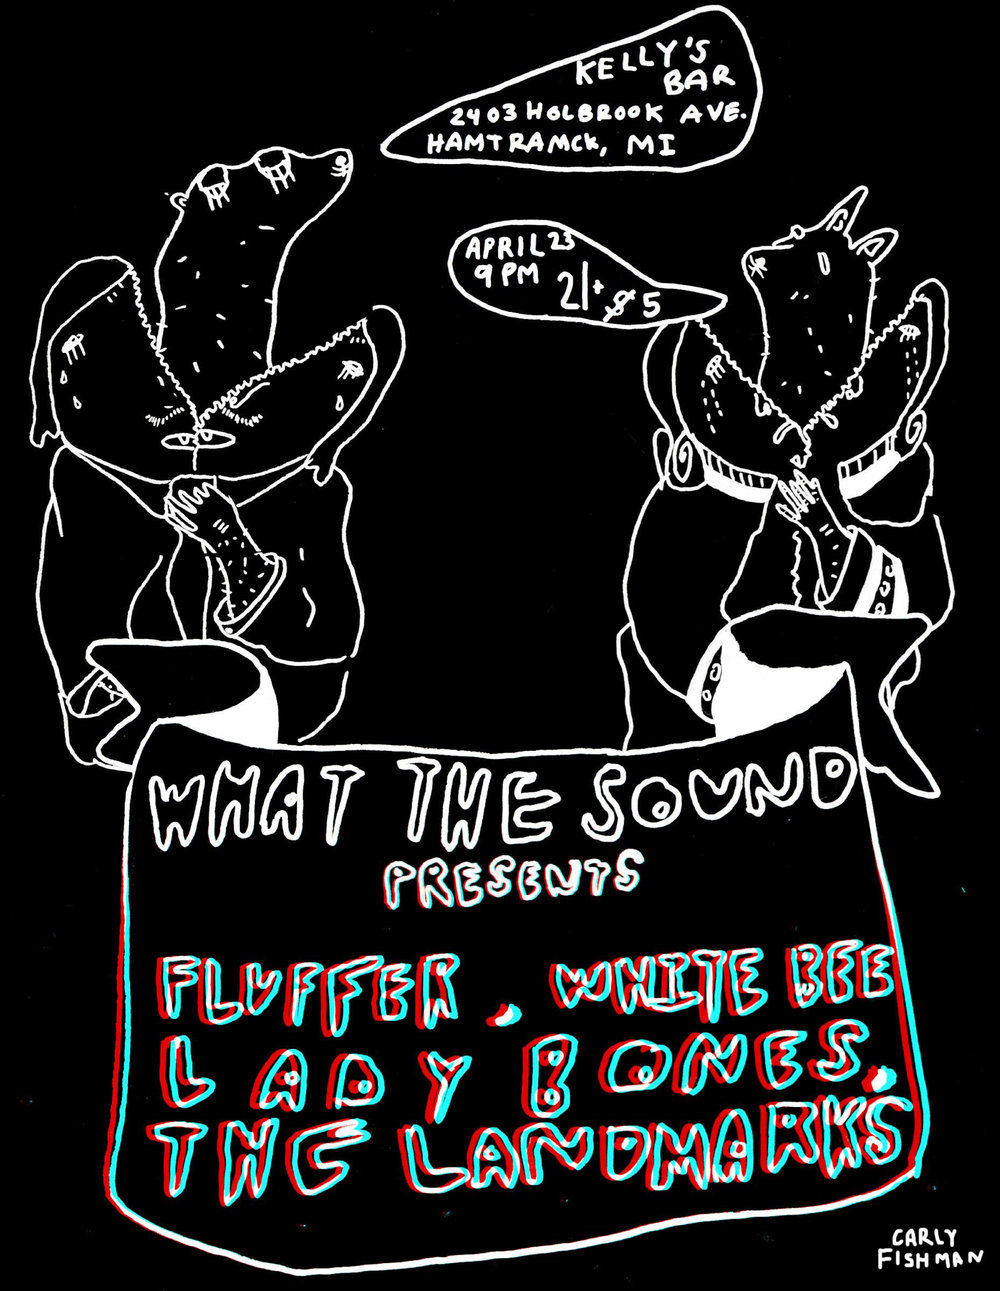 Fluffer / White Bee / Lady Bones / The Landmarks - Artwork by Carly Fishman  April 23, 2016 at Kelly's Bar